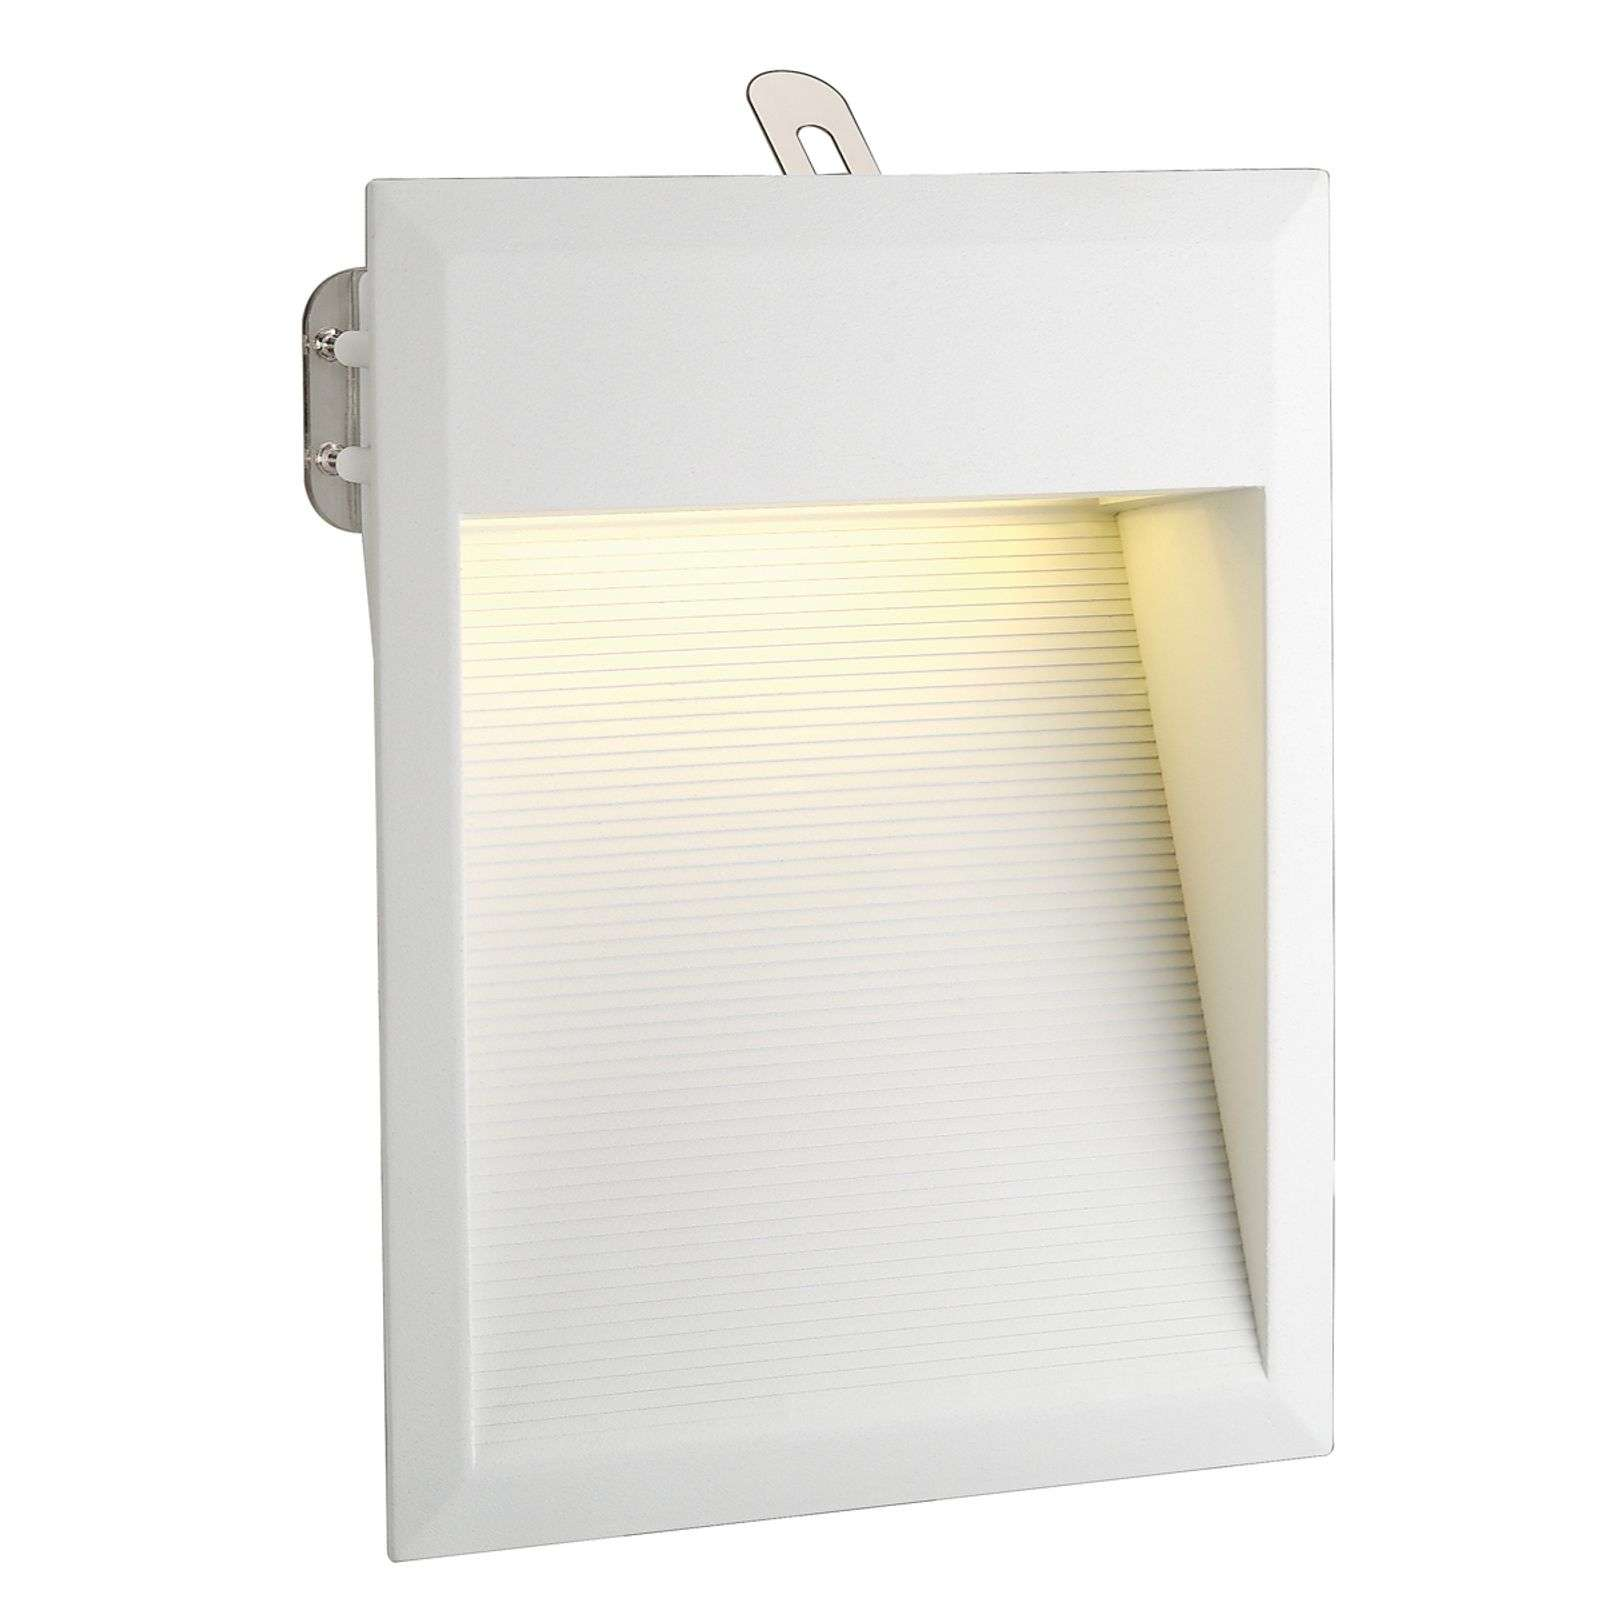 Applique blanche Downunder LED 27, blanc chaud